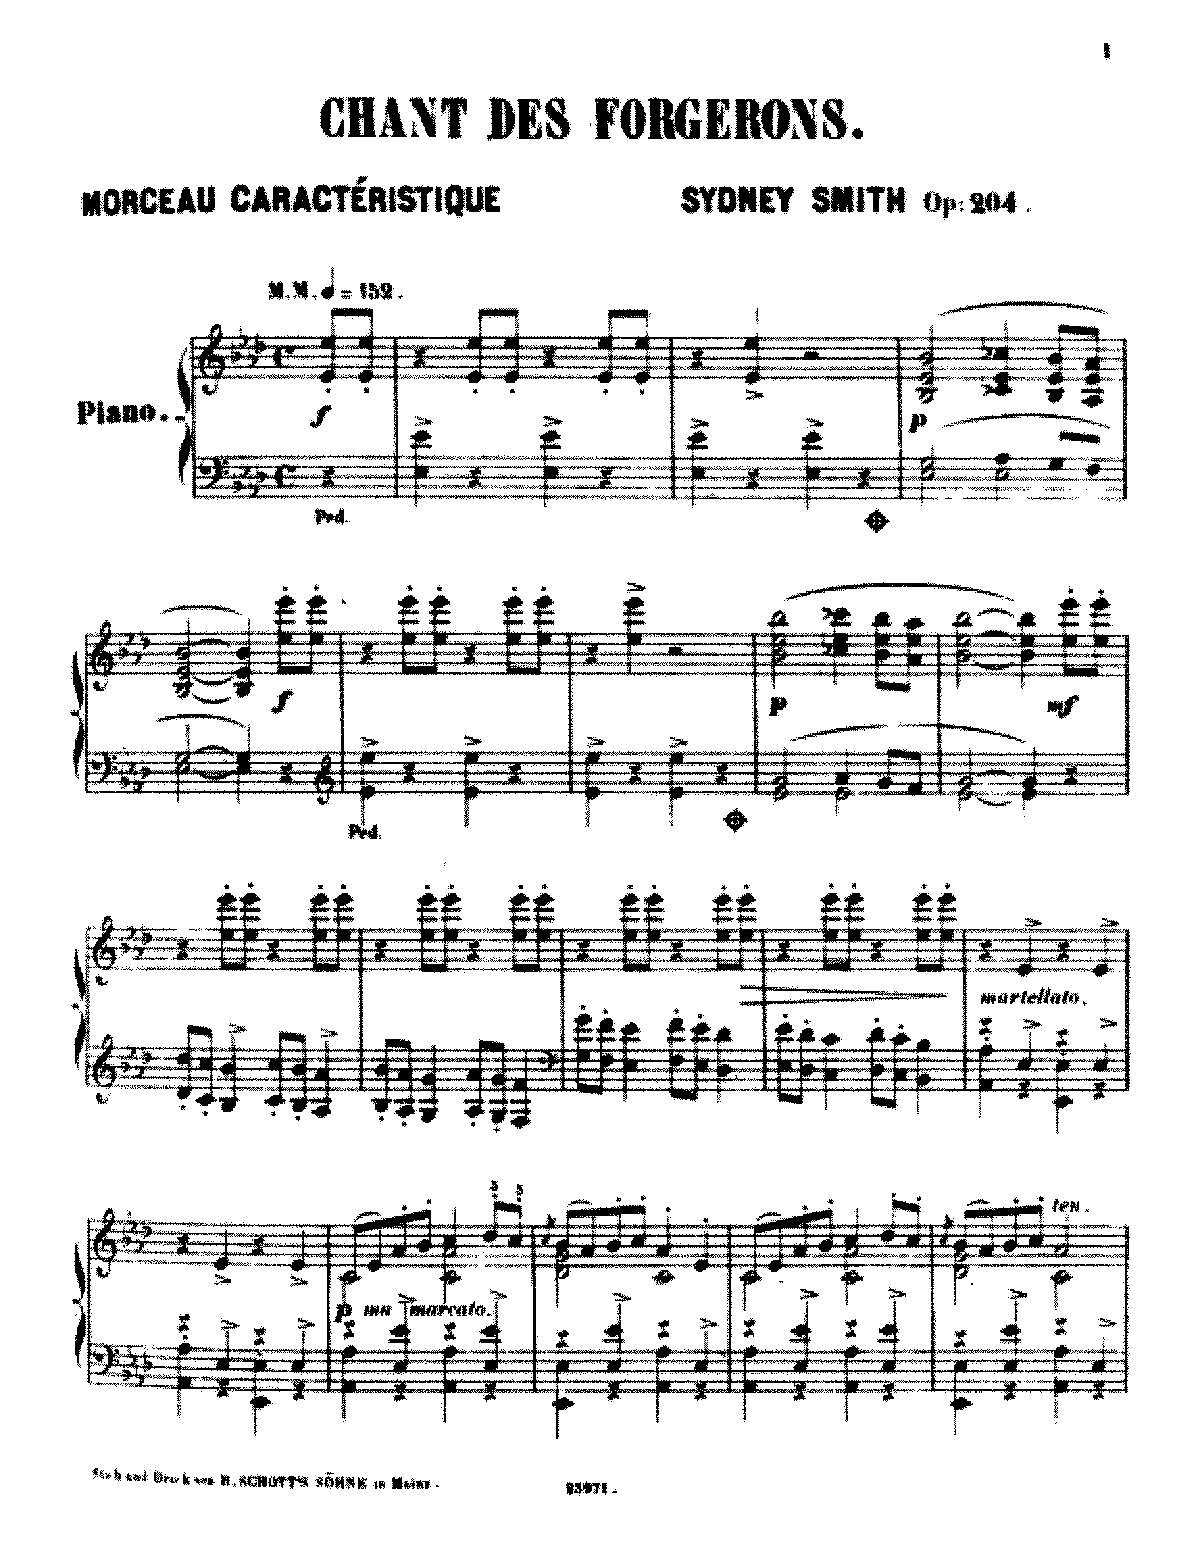 Smith, Sydney op204 chant des forgerons.pdf